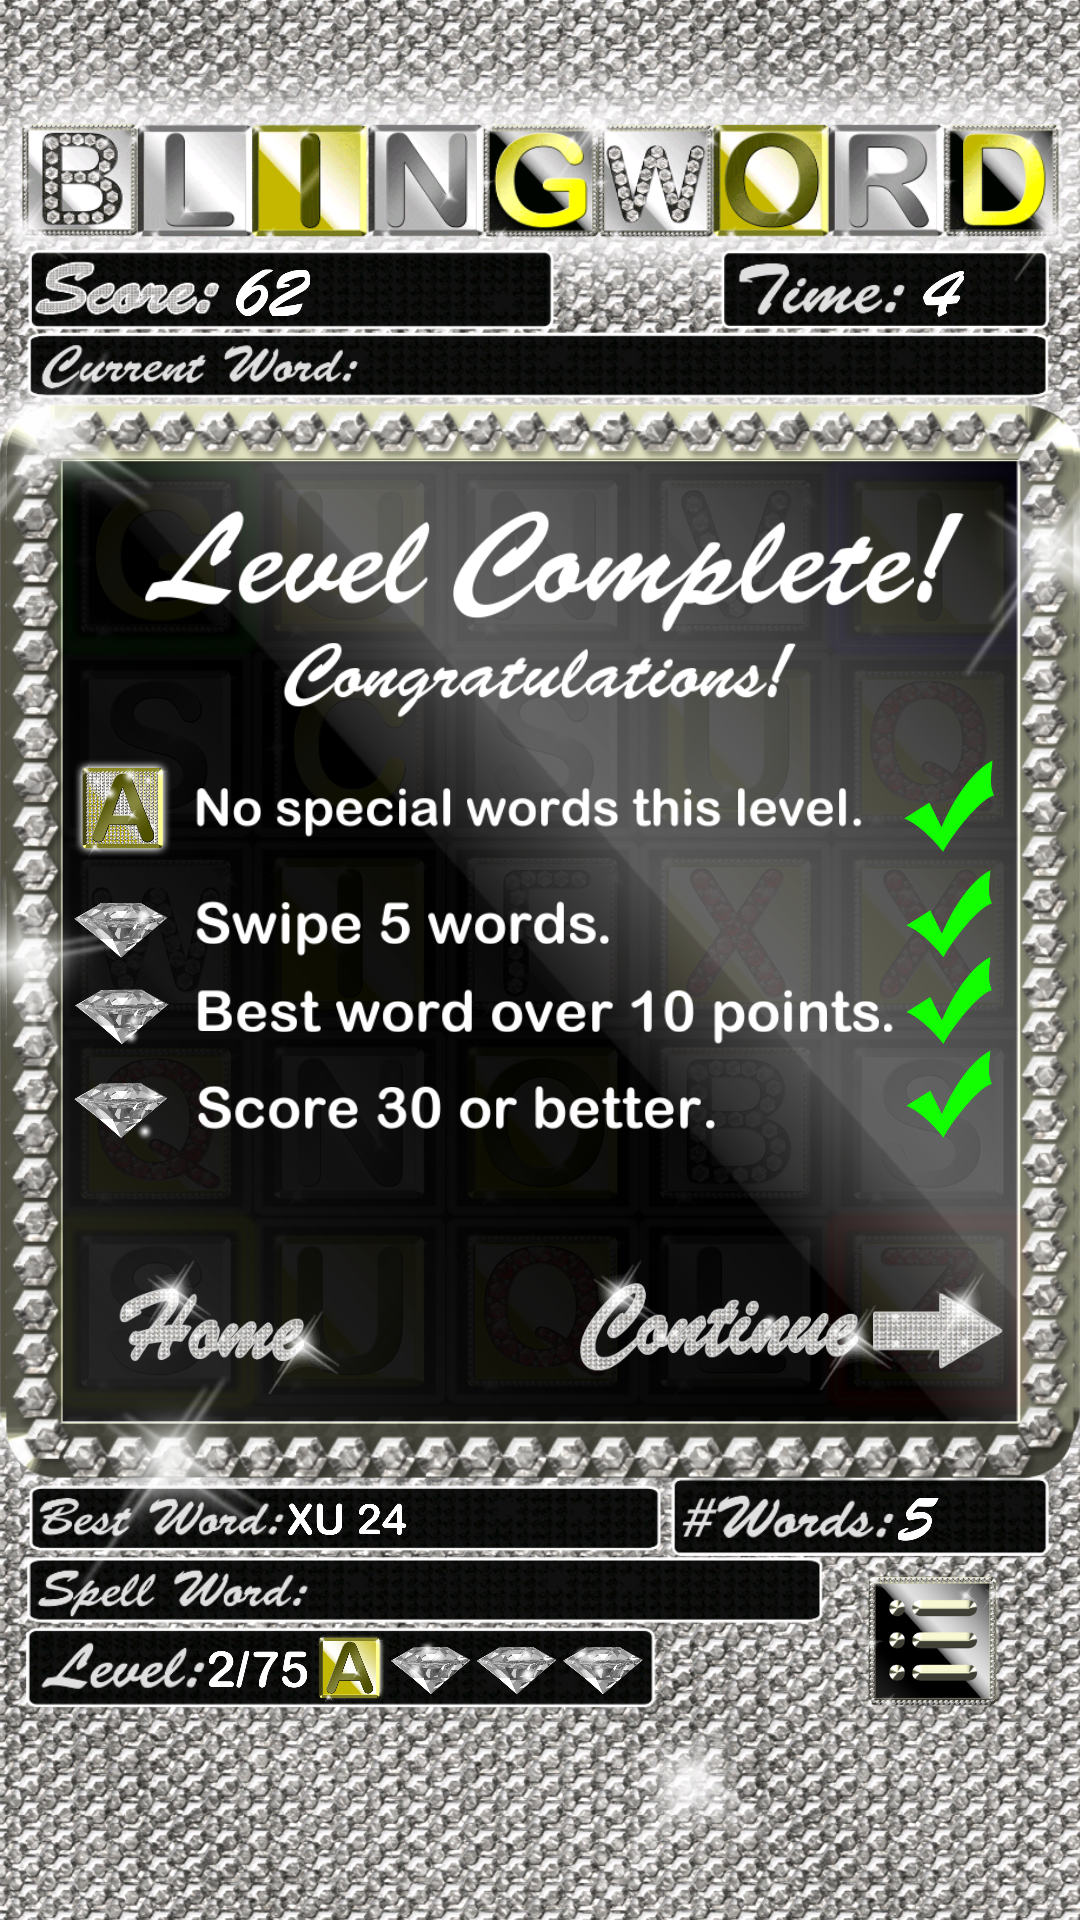 Blingword - Bling Word Game: Amazon.es: Appstore para Android